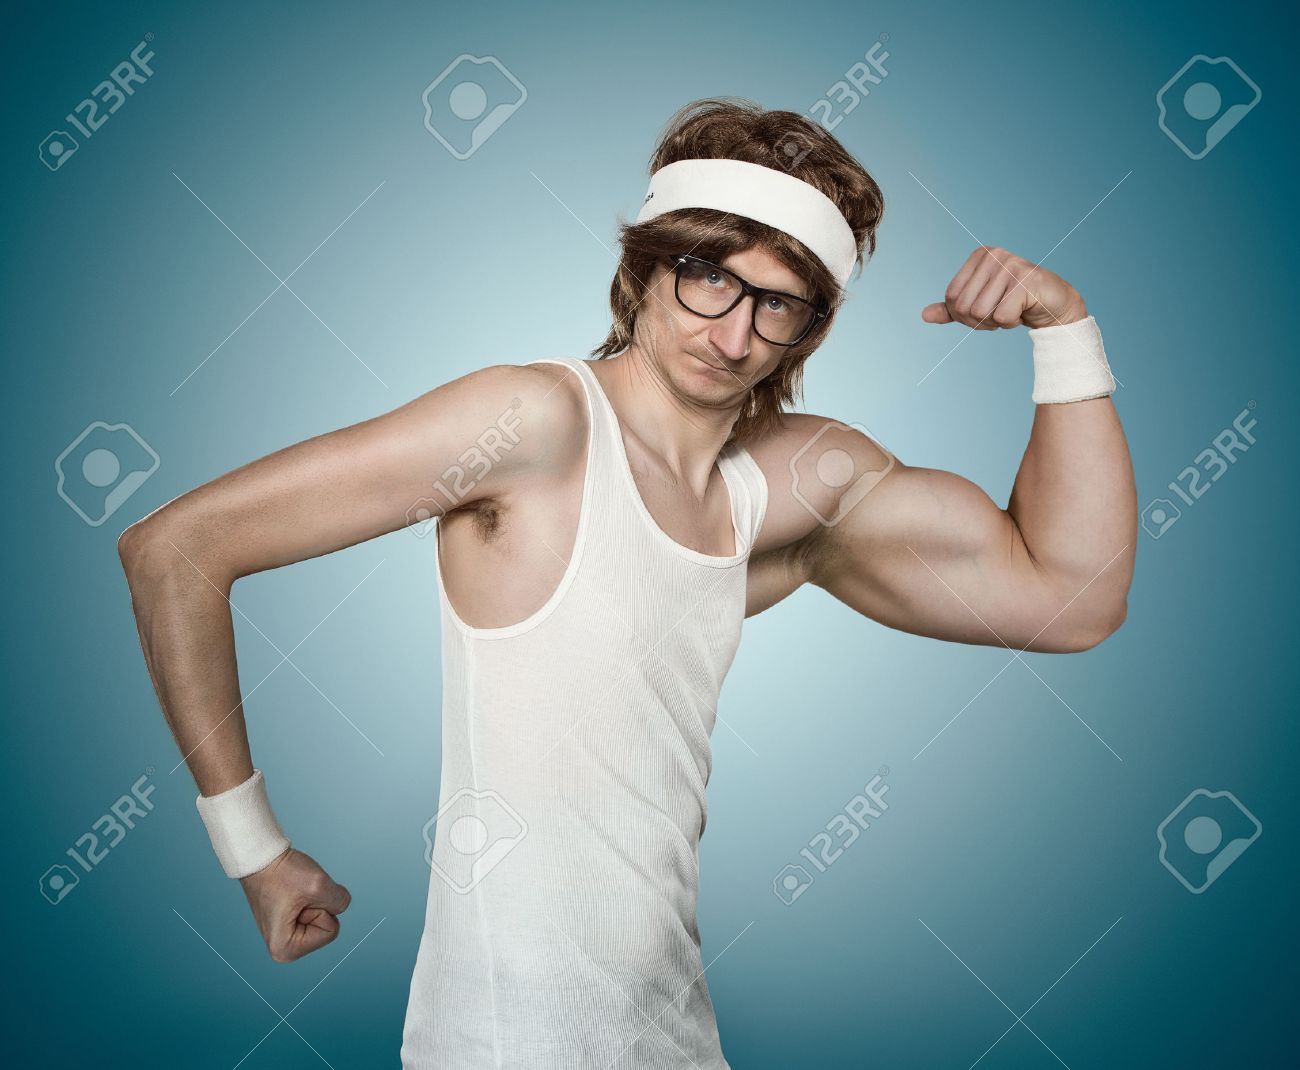 Funny retro nerd with one huge arm flexing his muscle over blue background - 31858852